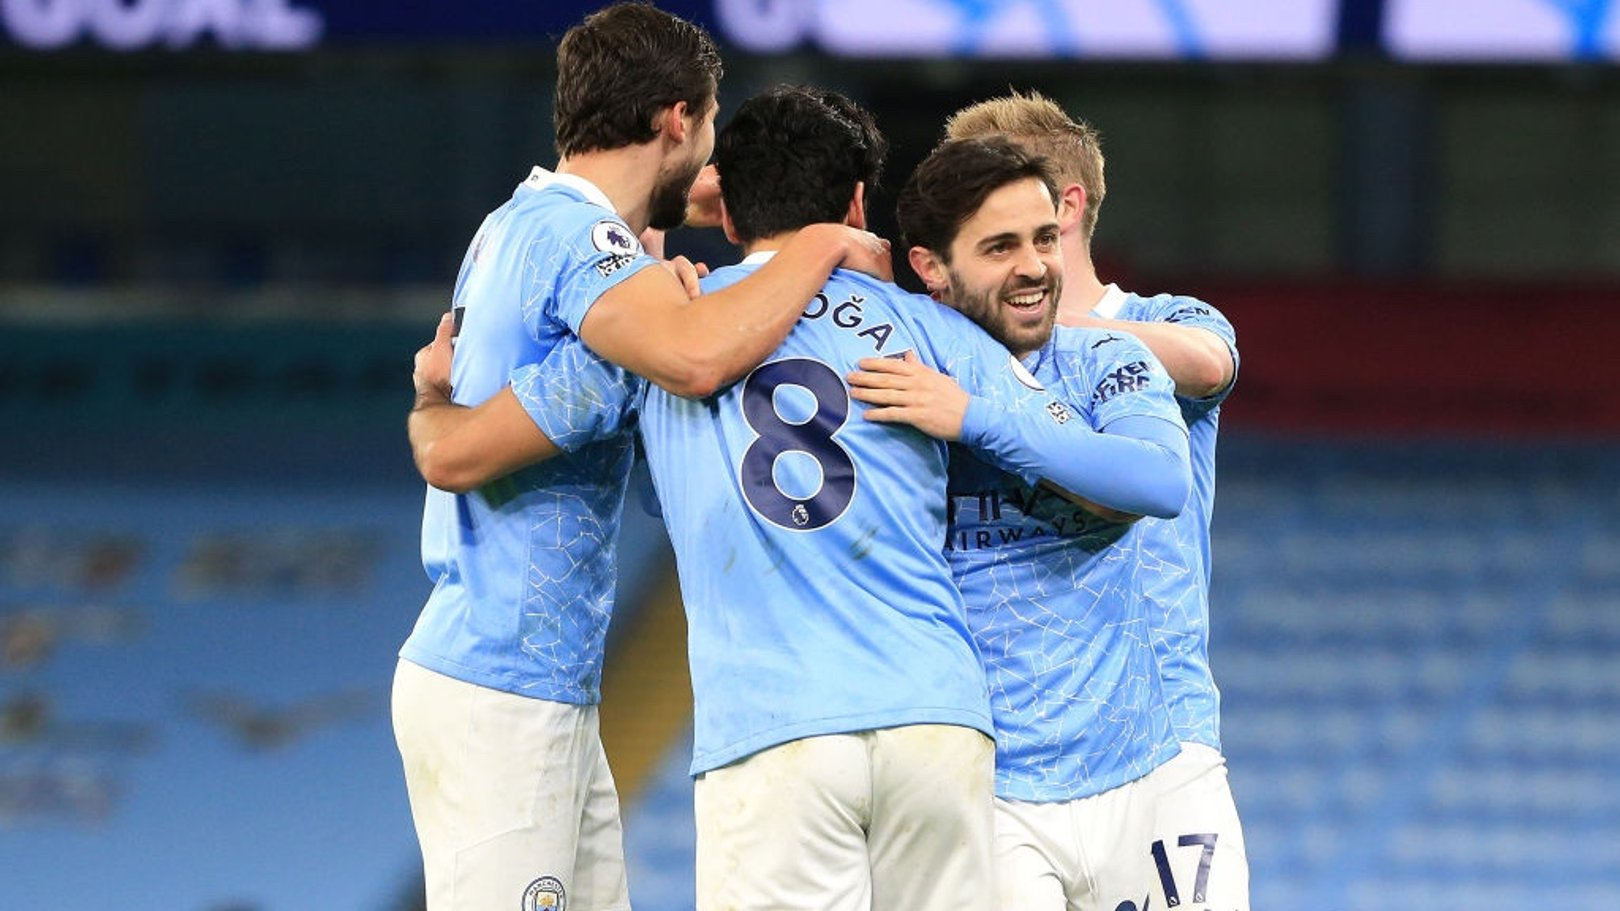 CENTRE OF ATTENTION: The players share the love with Gundogan after his wonderful goal.